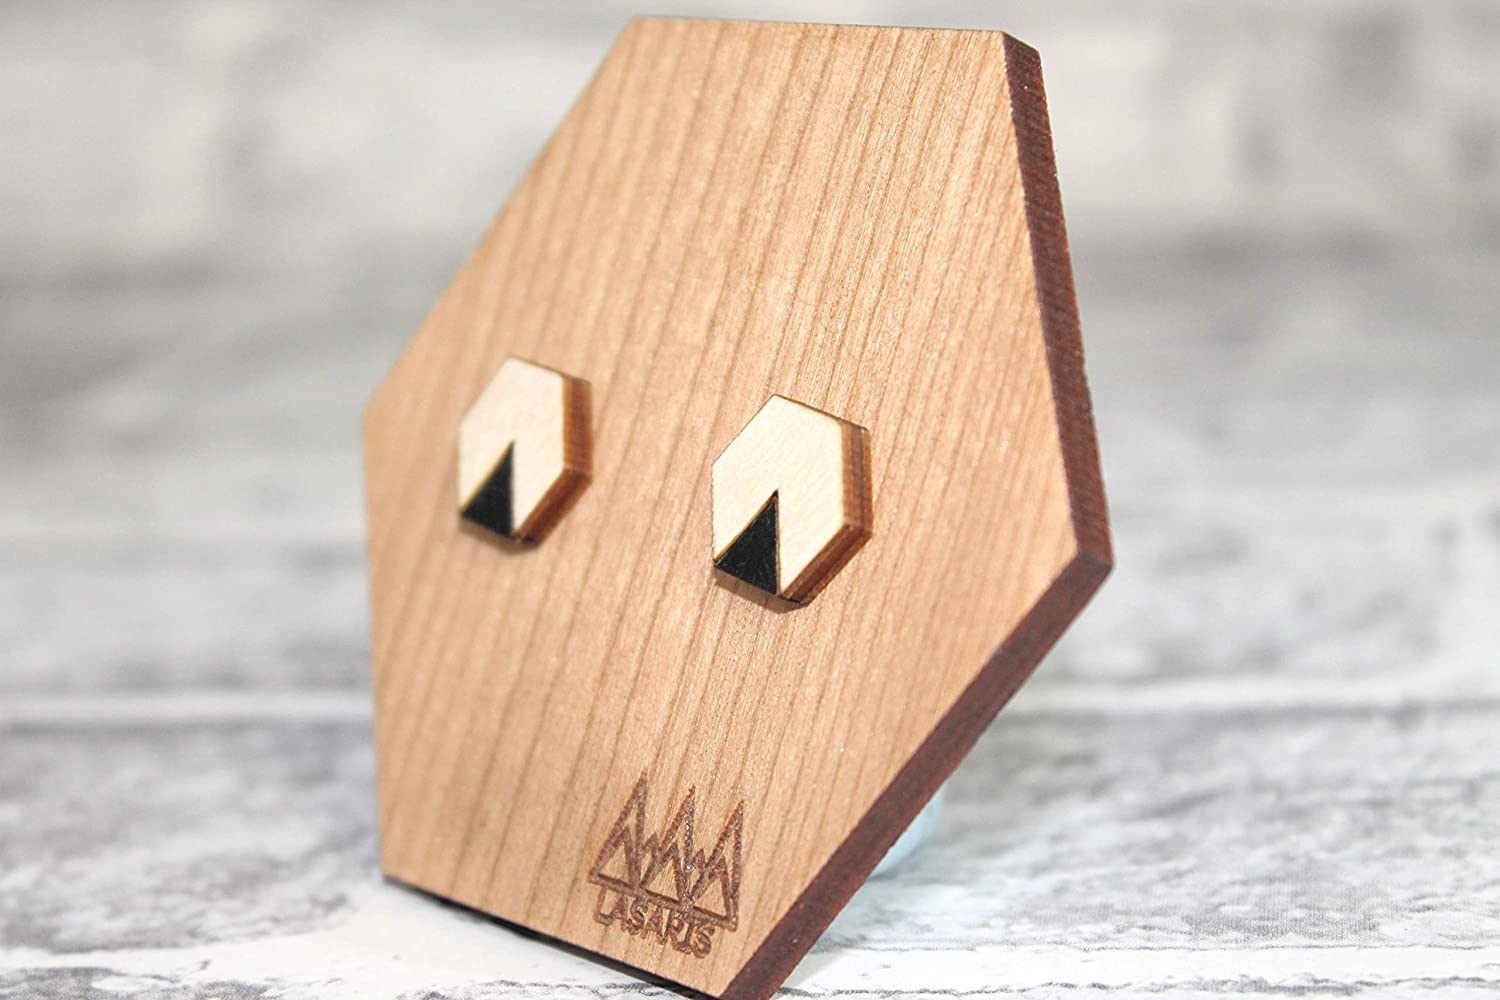 Eco Friendly and Sustainable Wooden Laser Cut Geometric Jewellery Hexagon Stud Earrings With Coloured Triangles